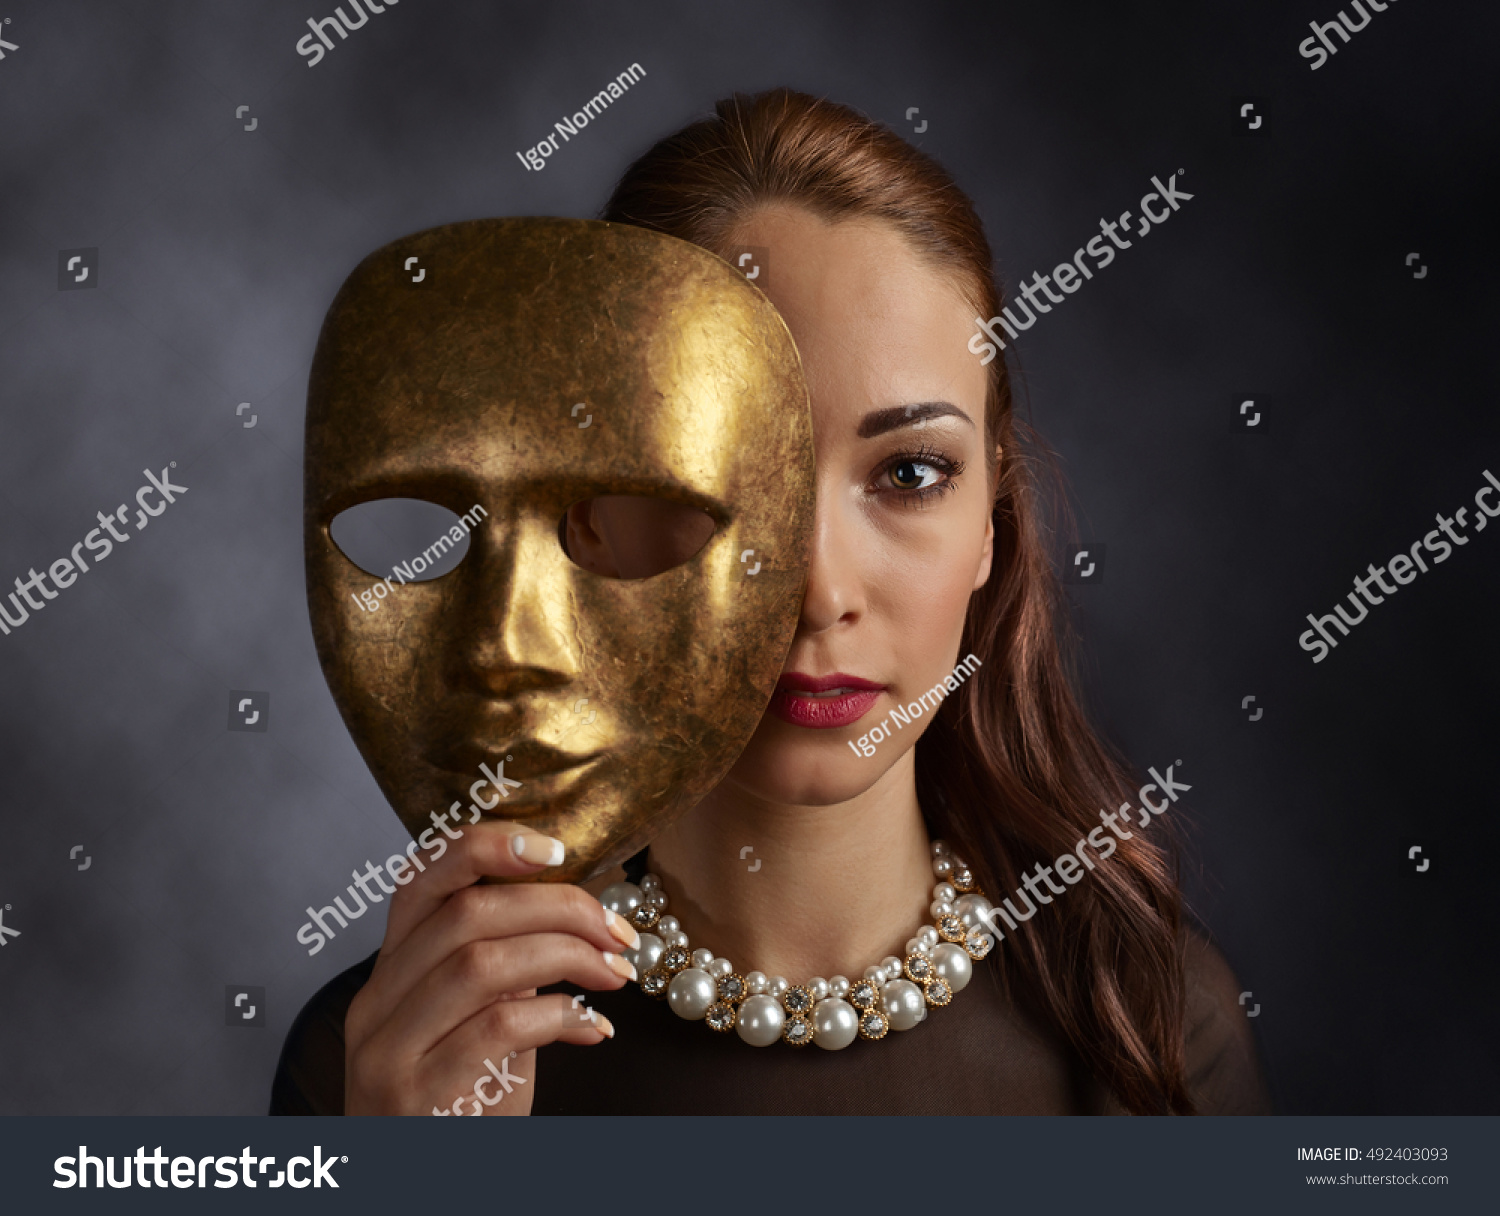 Beautiful Woman In A Black Dress With A Pearl Necklace And Old Mask